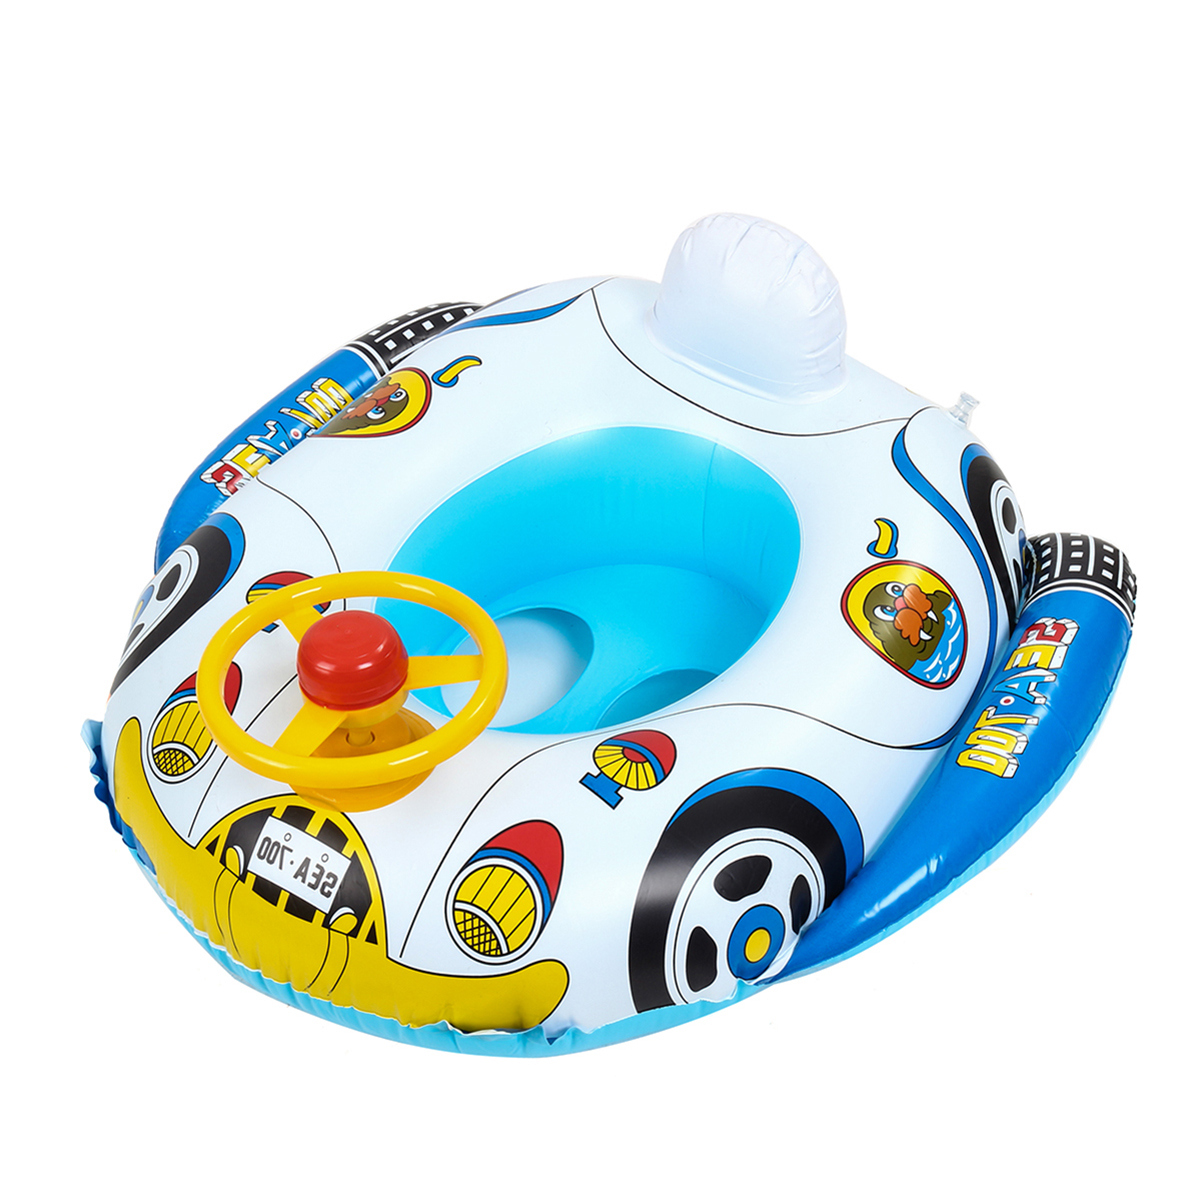 Baby Car Swimming Water Float Boat Pool Beach Inflatable Kid Toy Gift